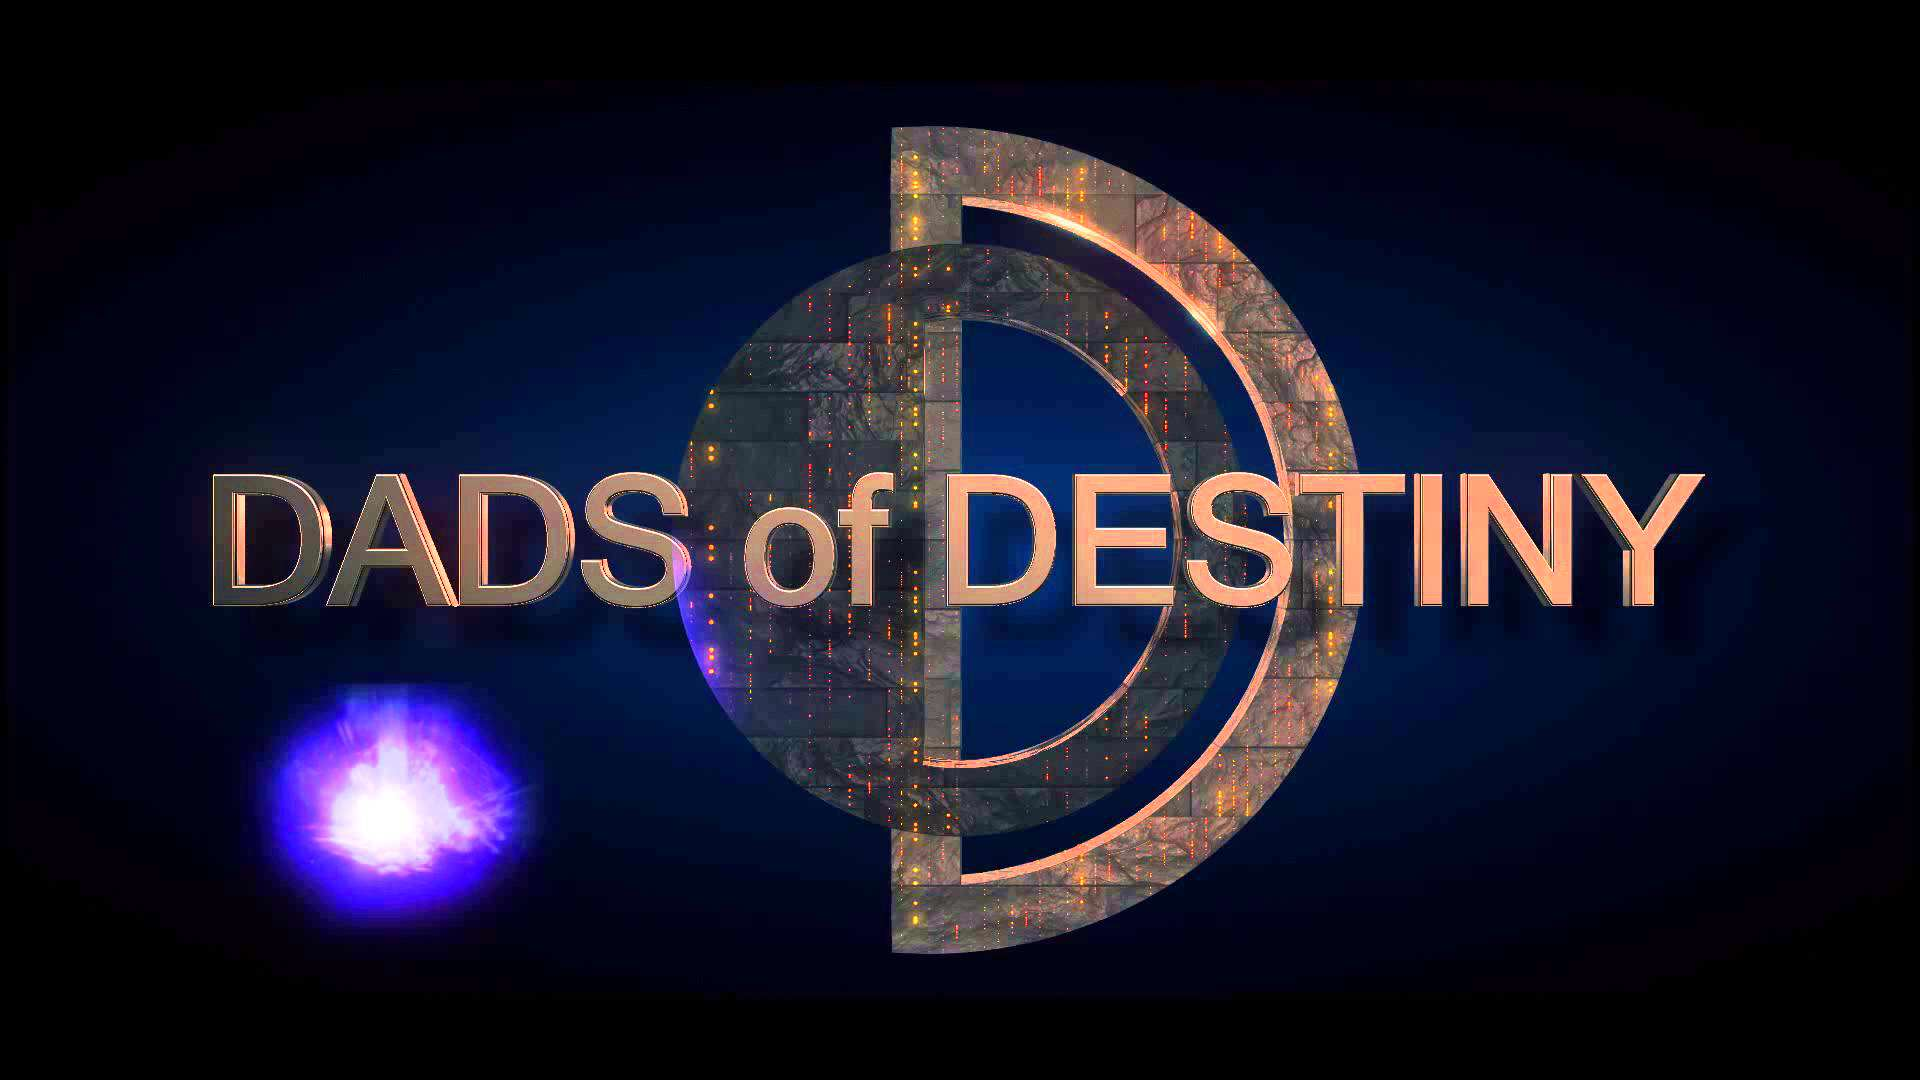 This Destiny Clan Banded Together To Help A Family In Need maxresdefault 1 16